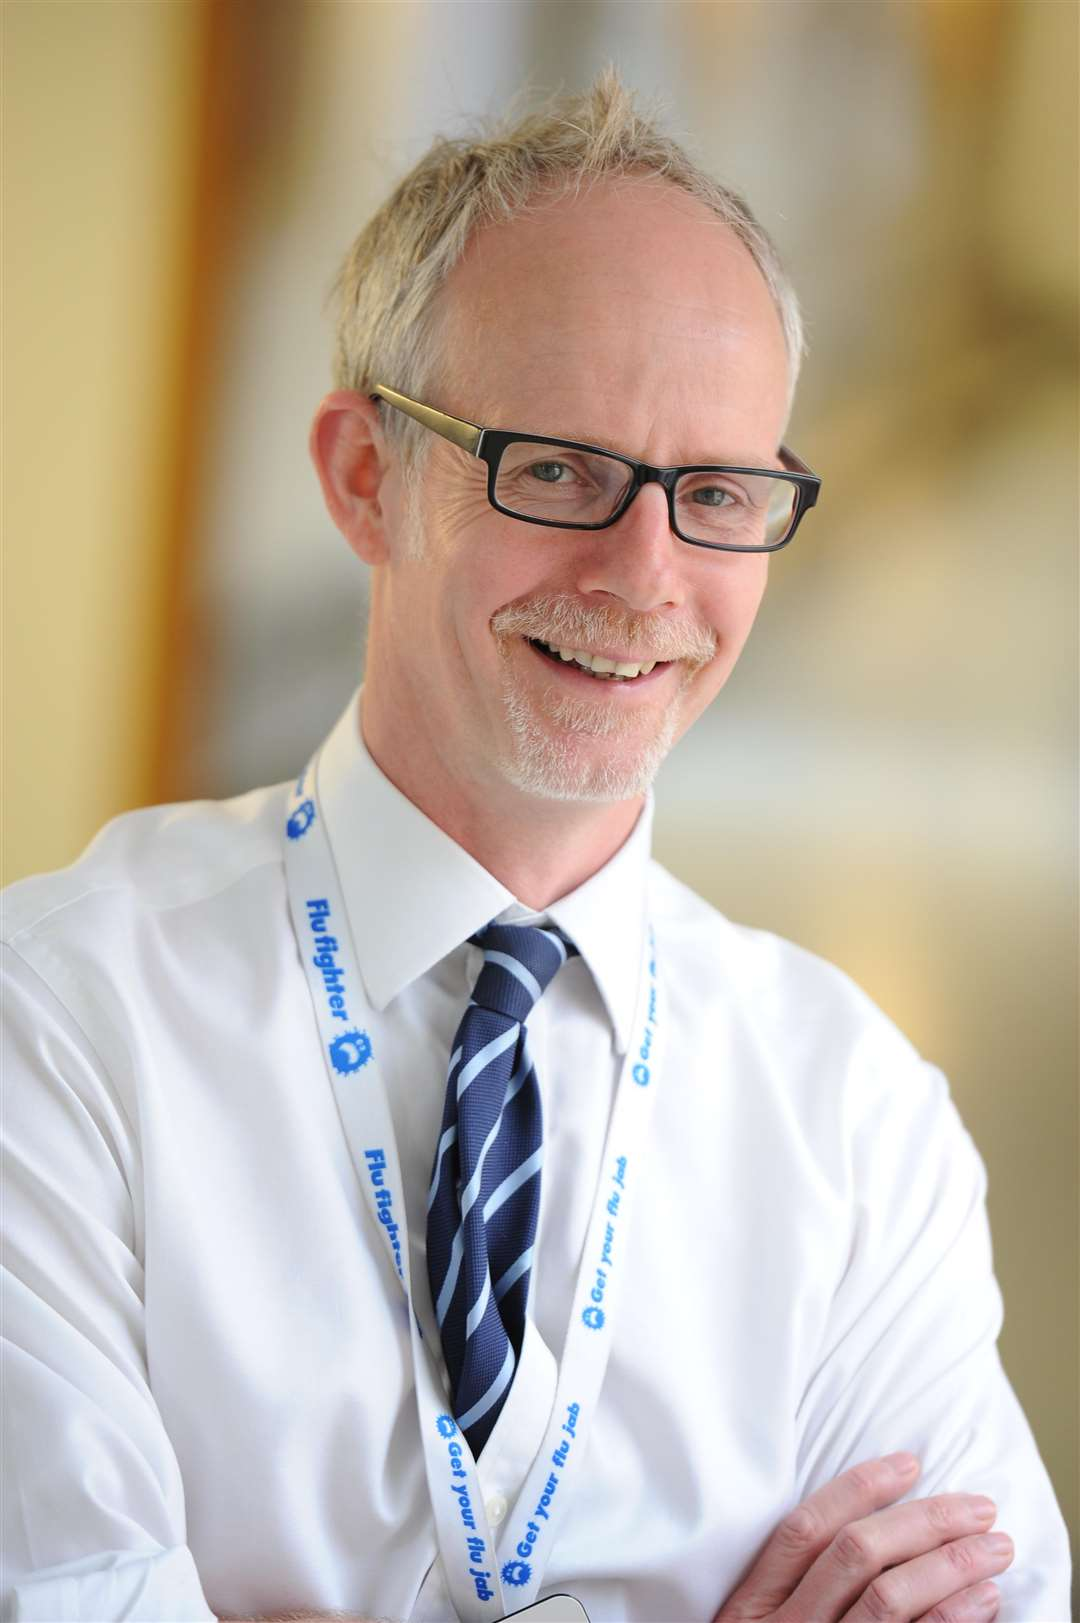 Dr Stephen Dunn, Chief Executive of West Suffolk Hospital